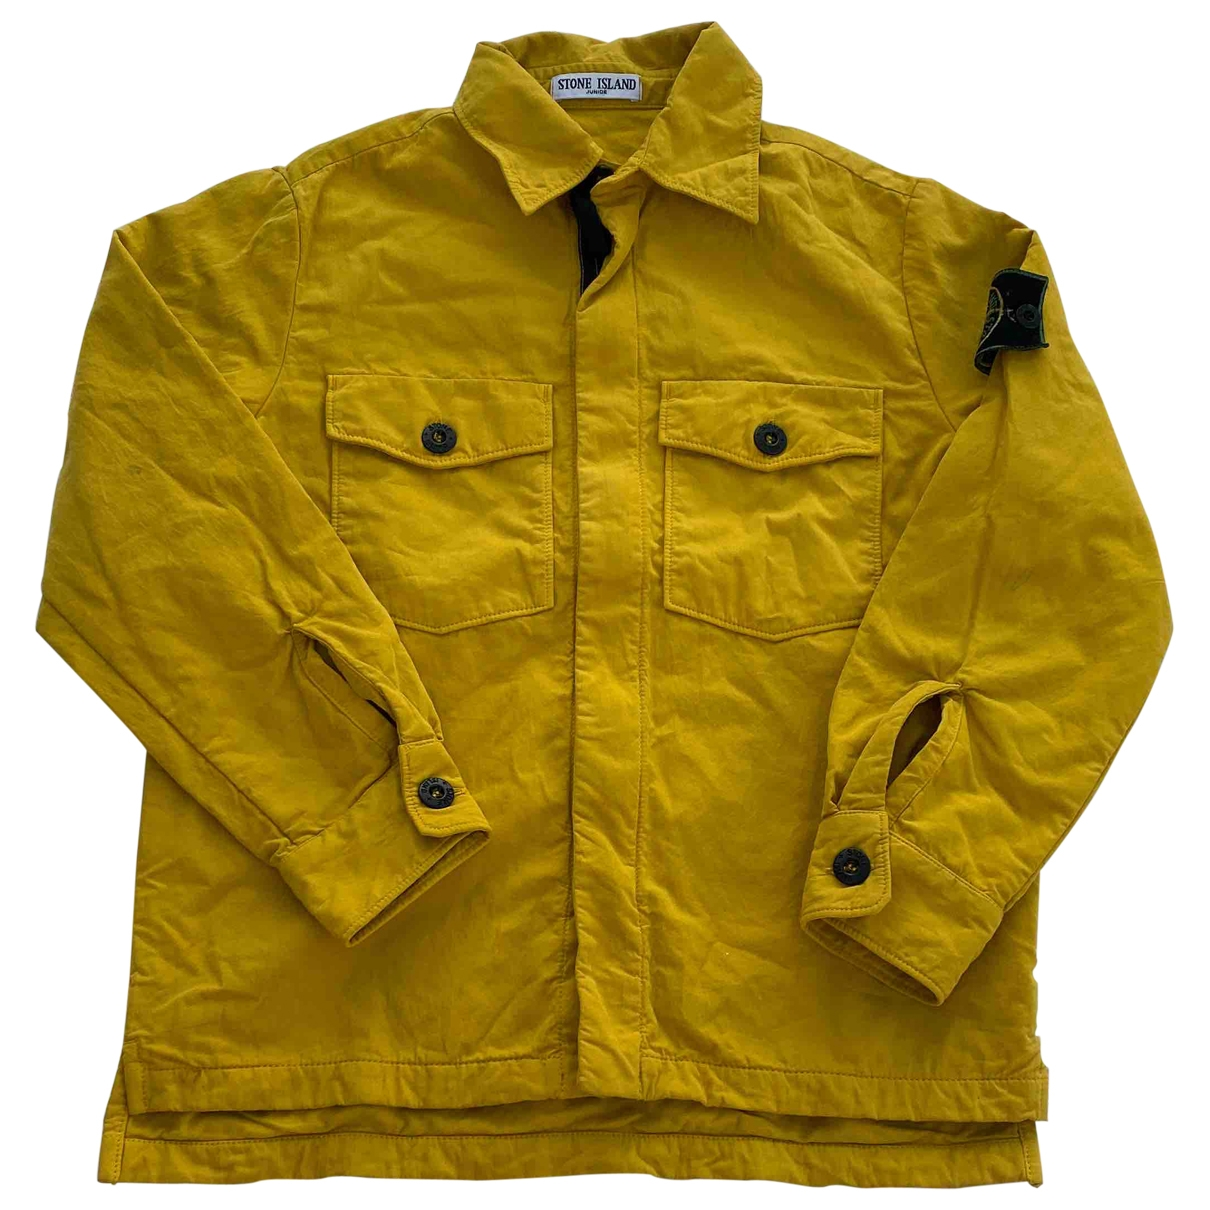 Stone Island \N Cotton jacket & coat for Kids 8 years - up to 128cm FR